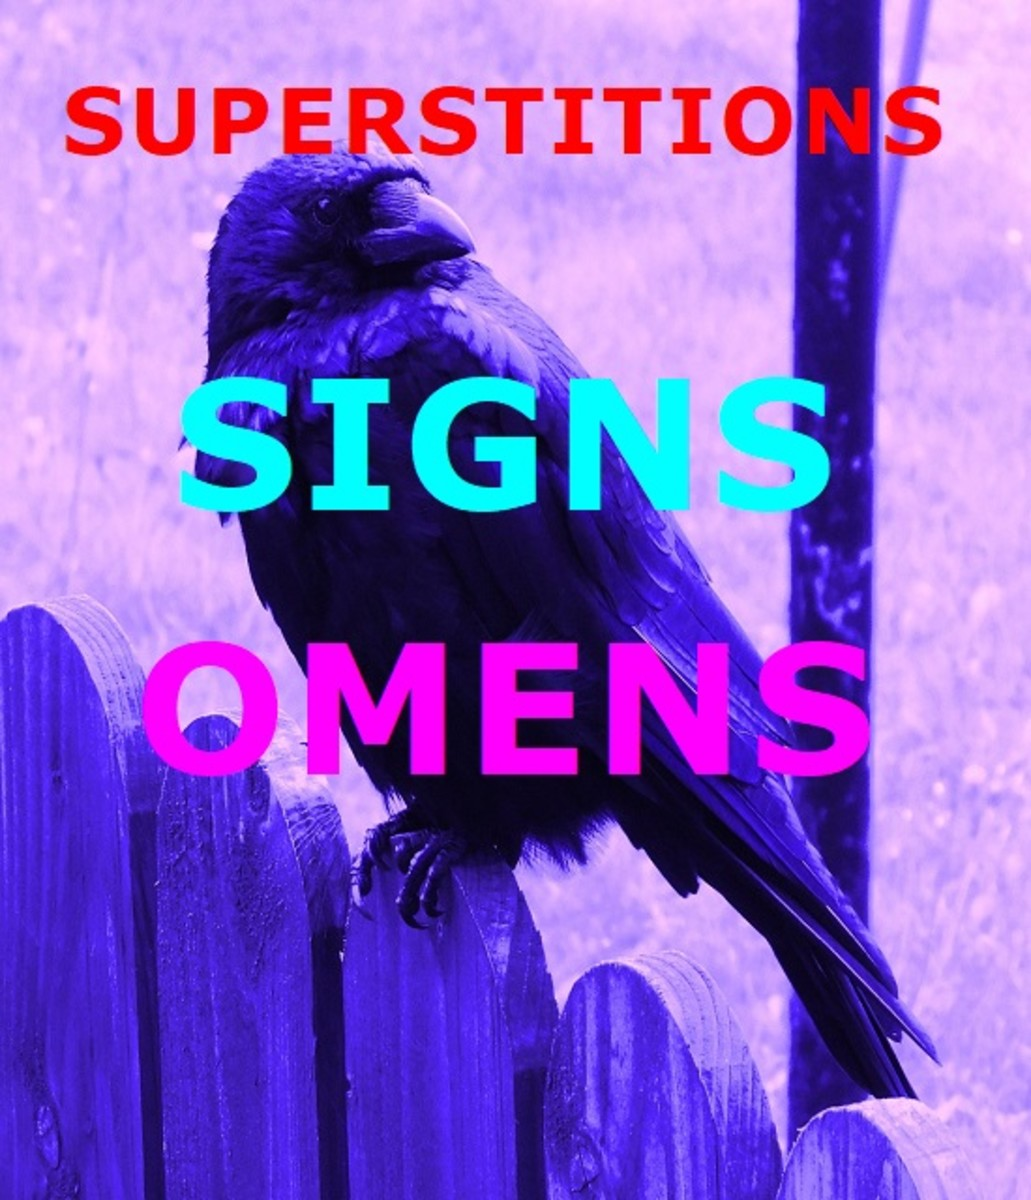 superstitions-signs-and-omens-interpretation-and-origins